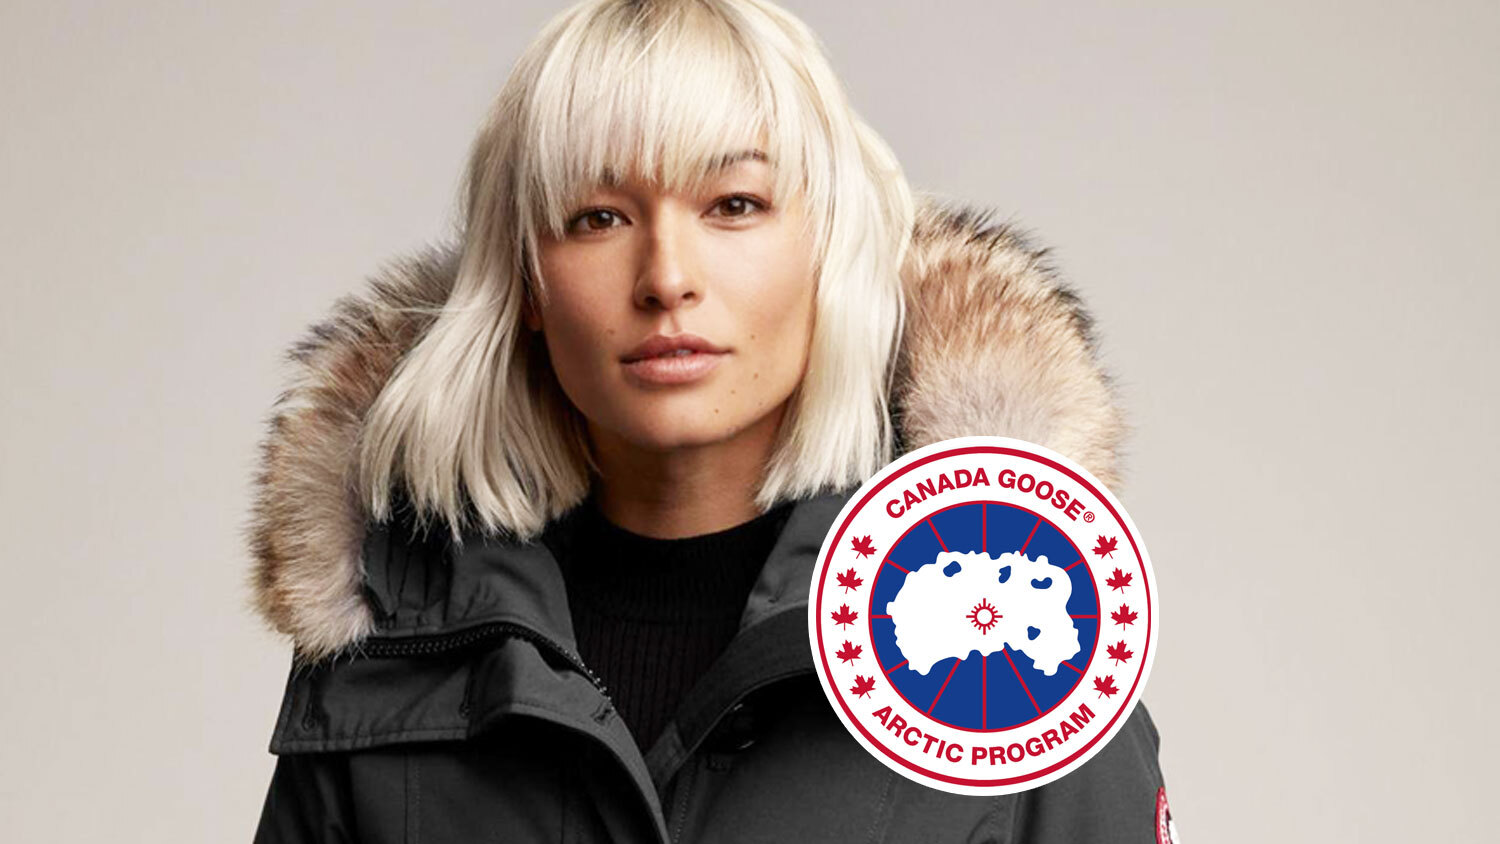 Canada Goose Parkas and Other Furs Now Banned at Paragon Sports